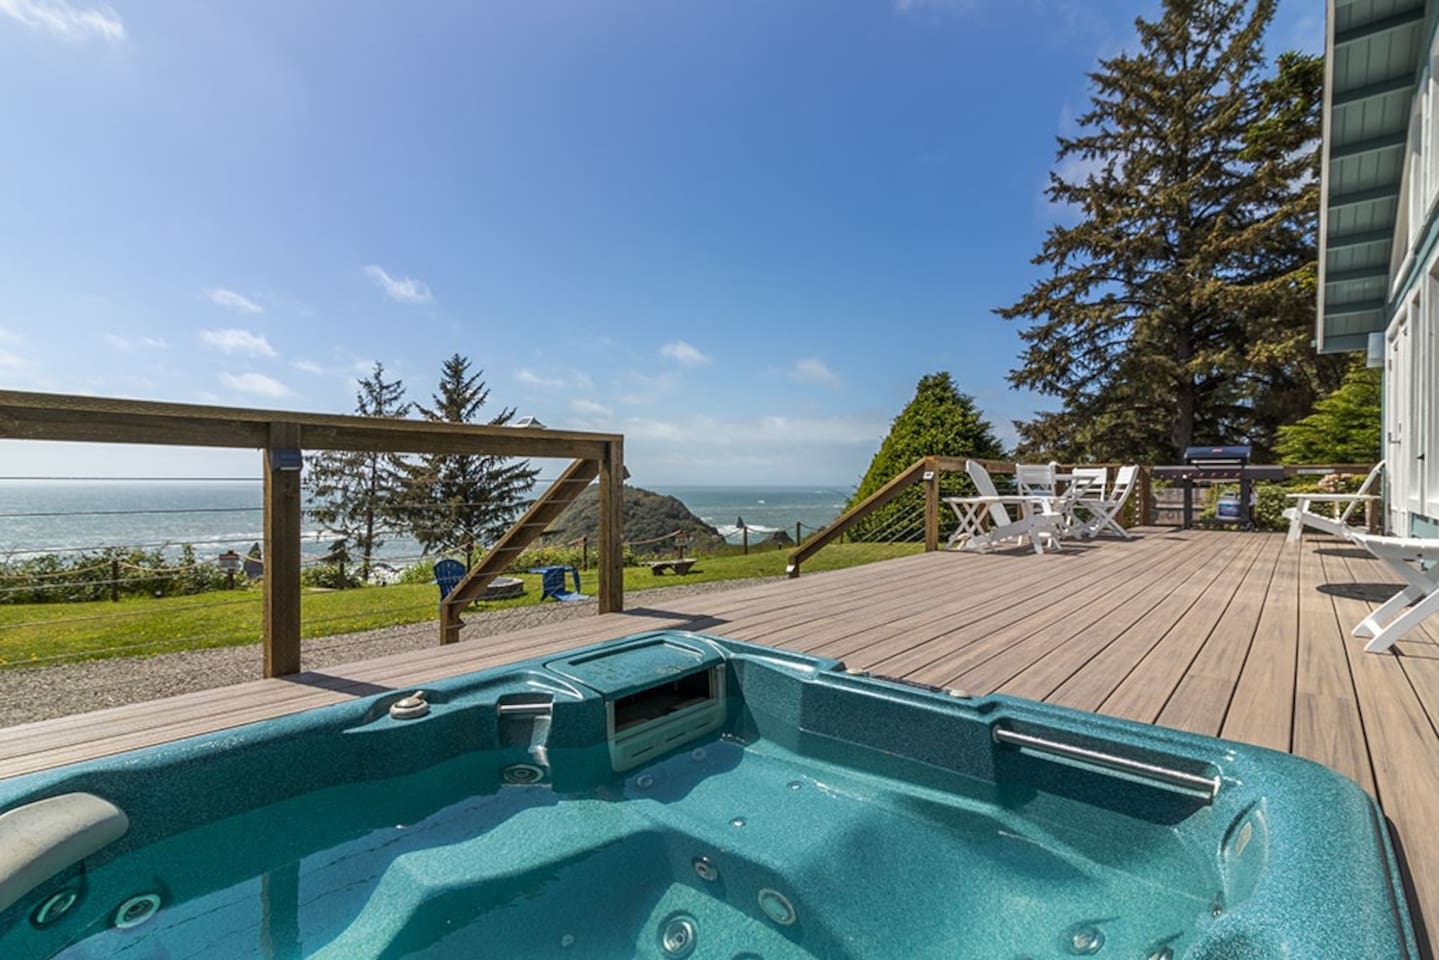 Relax in the hot tub while soaking up sweeping ocean views!